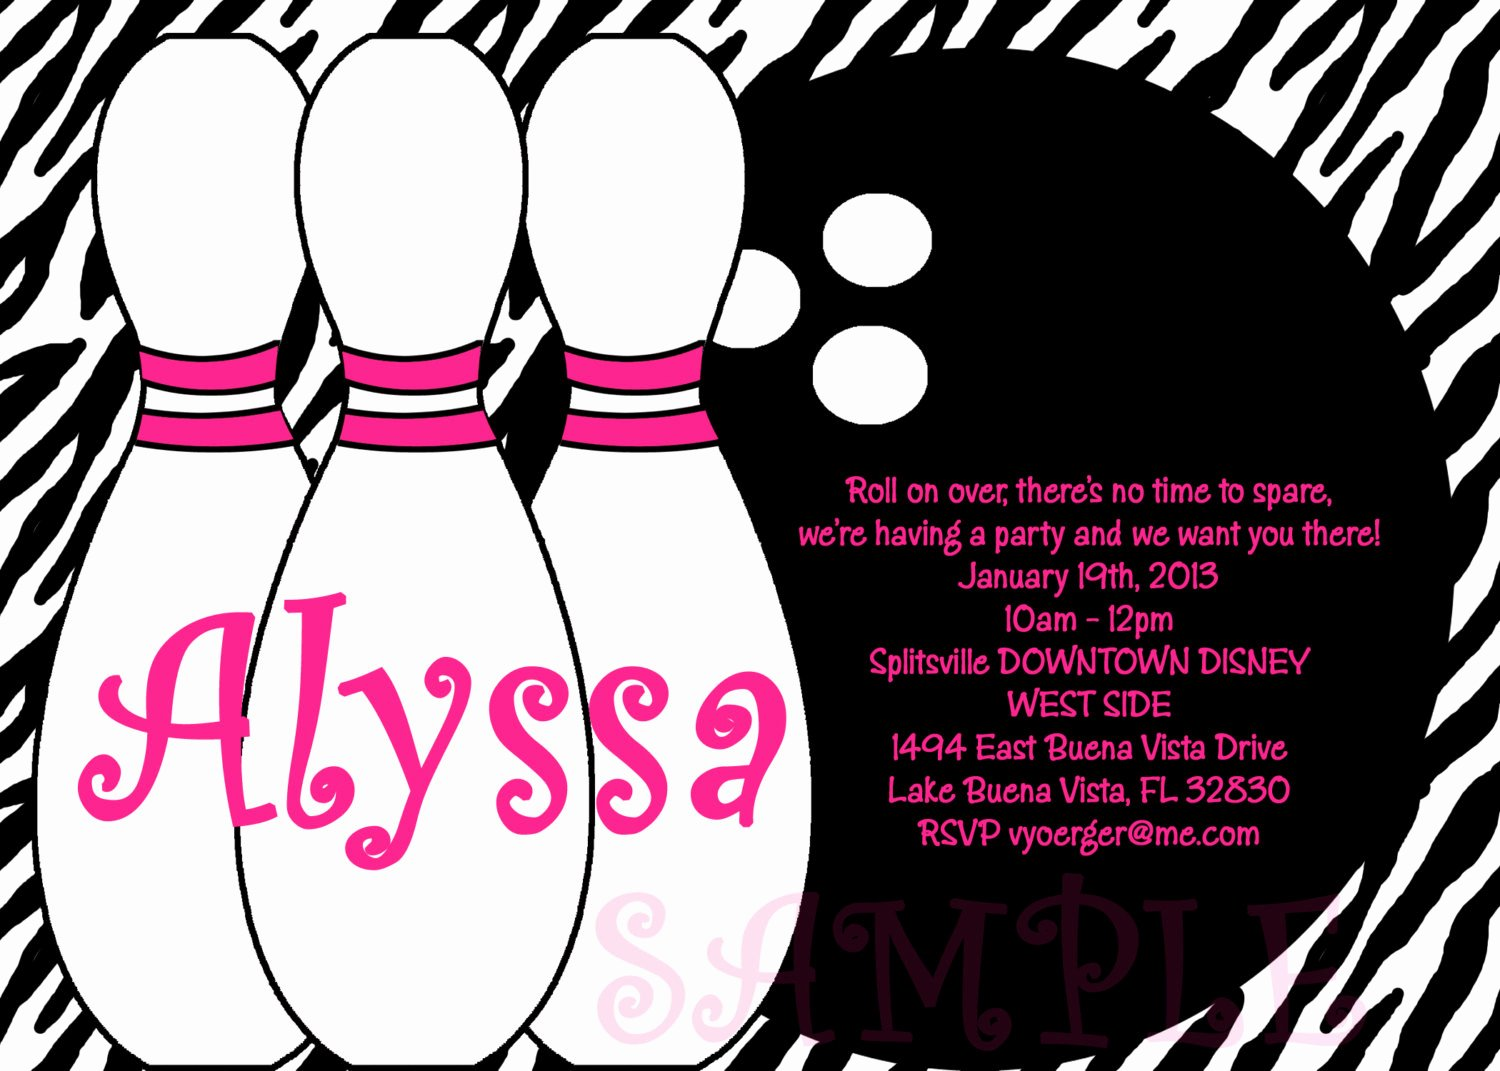 Bowling Party Invitations Templates Inspirational Birthday Invitations Bowling Party Invitations Templates